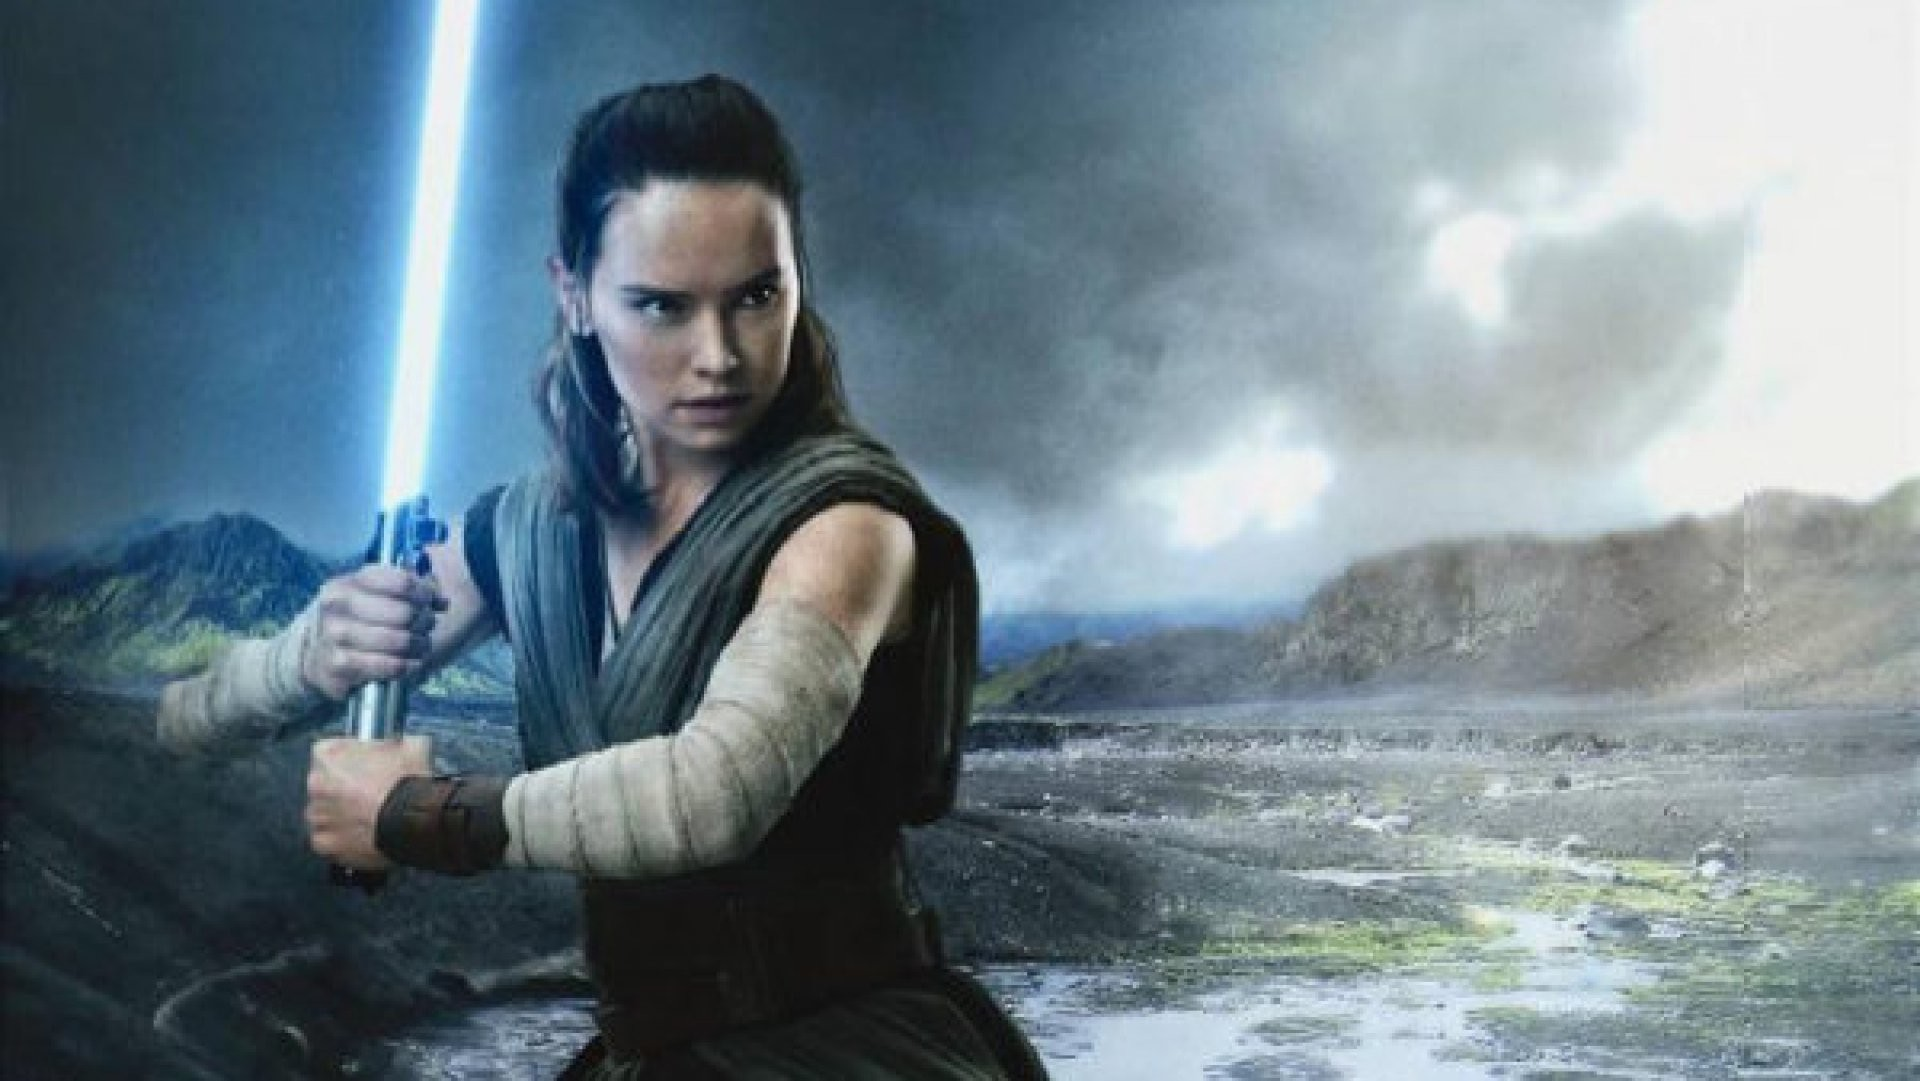 Star Wars Wallpaper Rey Posted By Sarah Johnson